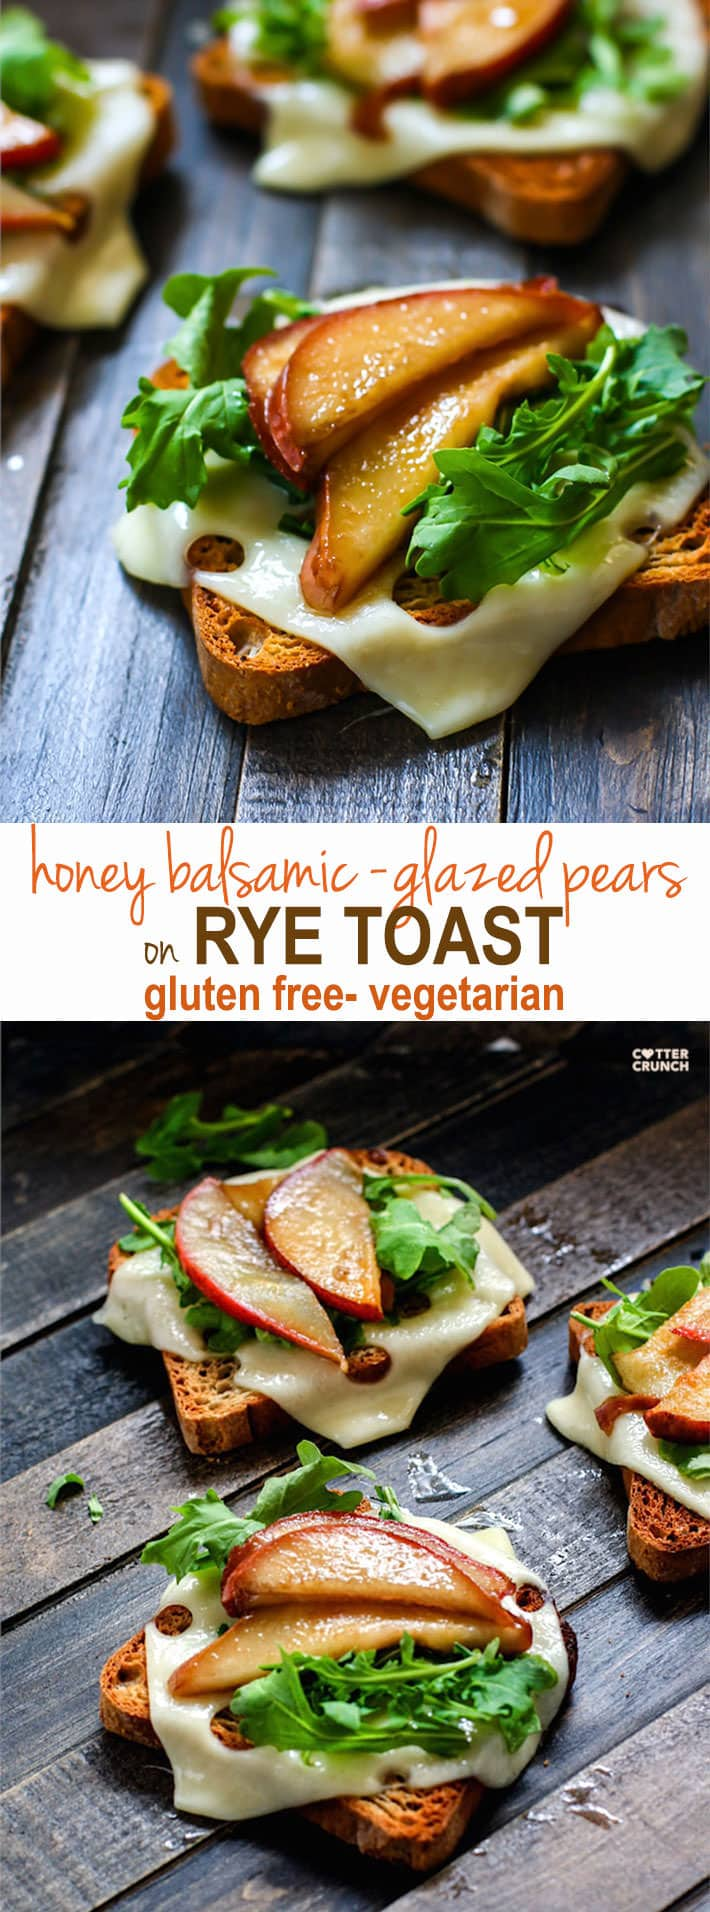 Honey Balsamic-glazed pears with Swiss Cheese and arugula on @udisglutenfree Gluten Free Rye toast! A delicious vegetarian meal great for a quick lunch, appetizer, or even a post workout snack! Balanced with whole grain gluten free carbs, protein, and healthy fats!